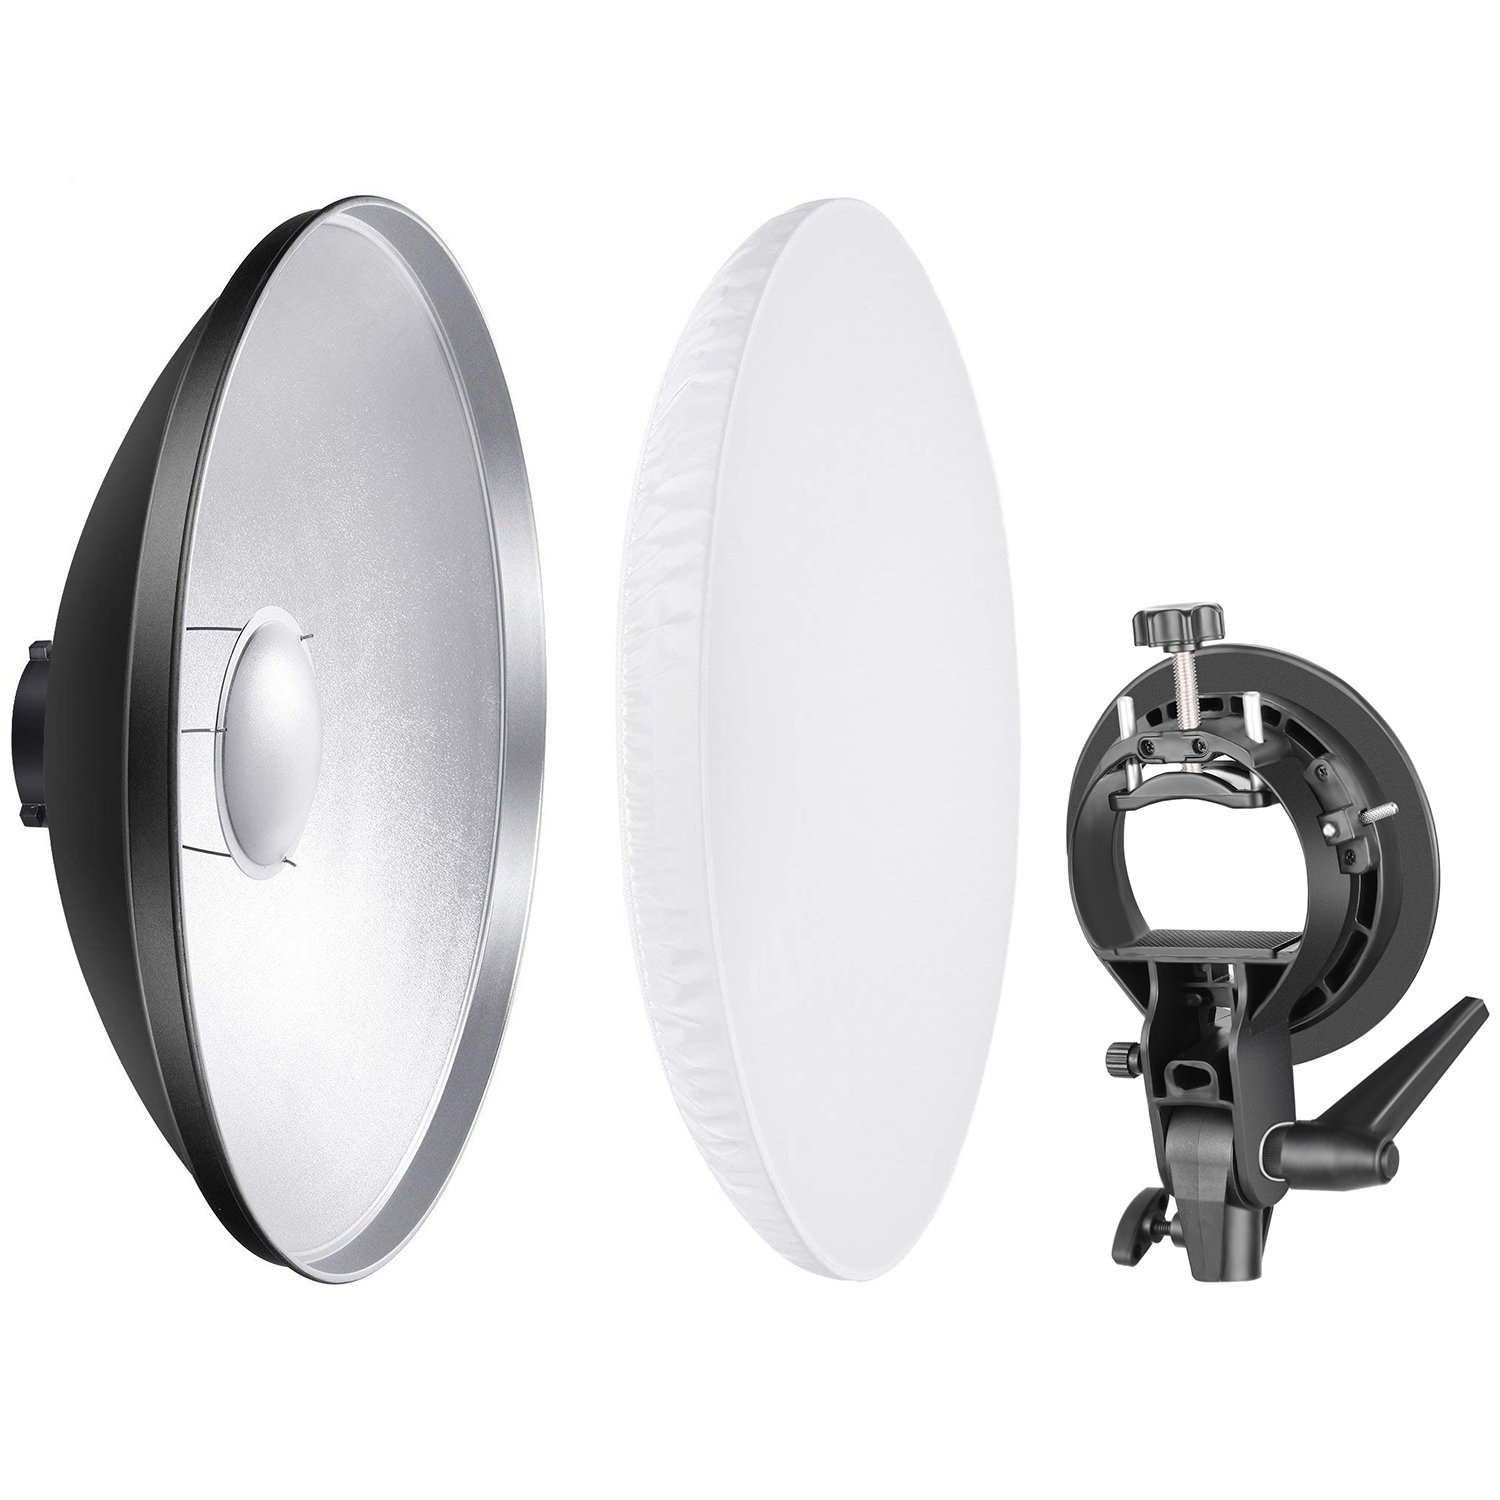 Neewer Photo Studio 16 inches/41 Centimeters Beauty Dish Aluminum Lighting Reflector with White Diffuser and S-Type Flash Speedlite Bracket Bowens Mount for Nikon Canon Sony and Other DSLR Cameras by Neewer